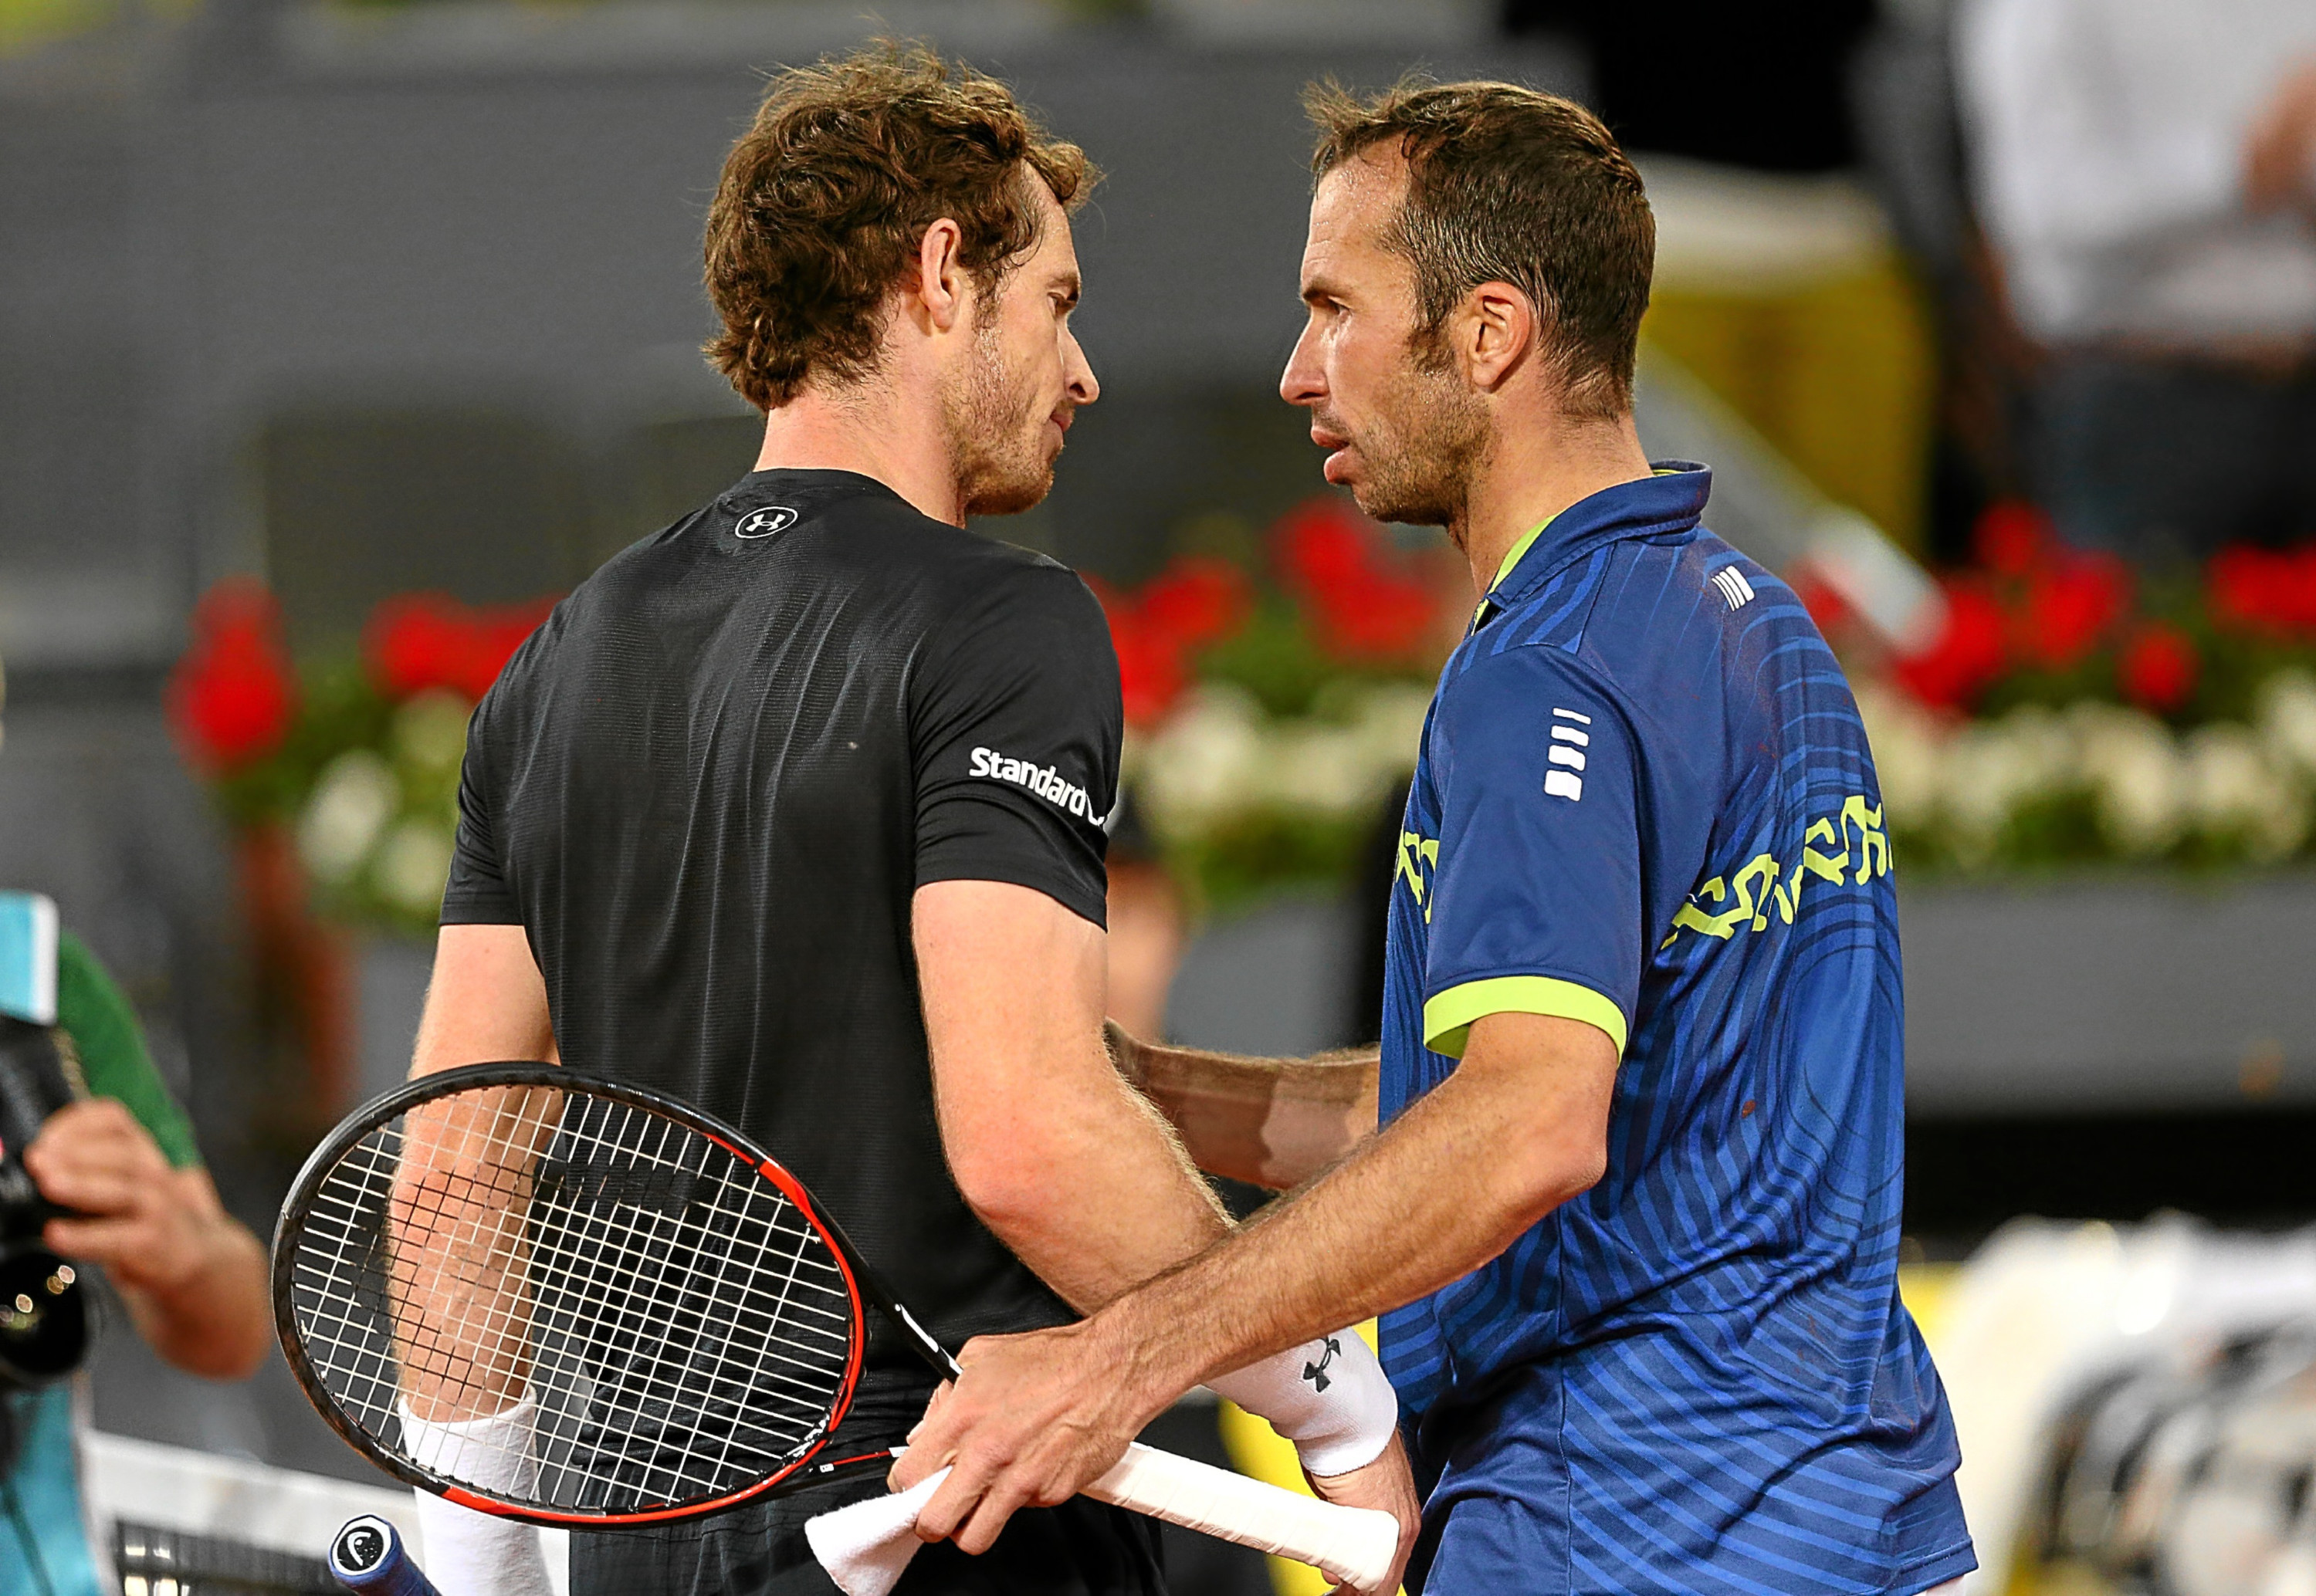 Andy Murray shakes hands at the net after his three set victory against Radek Stepanek at the Madrid Open.